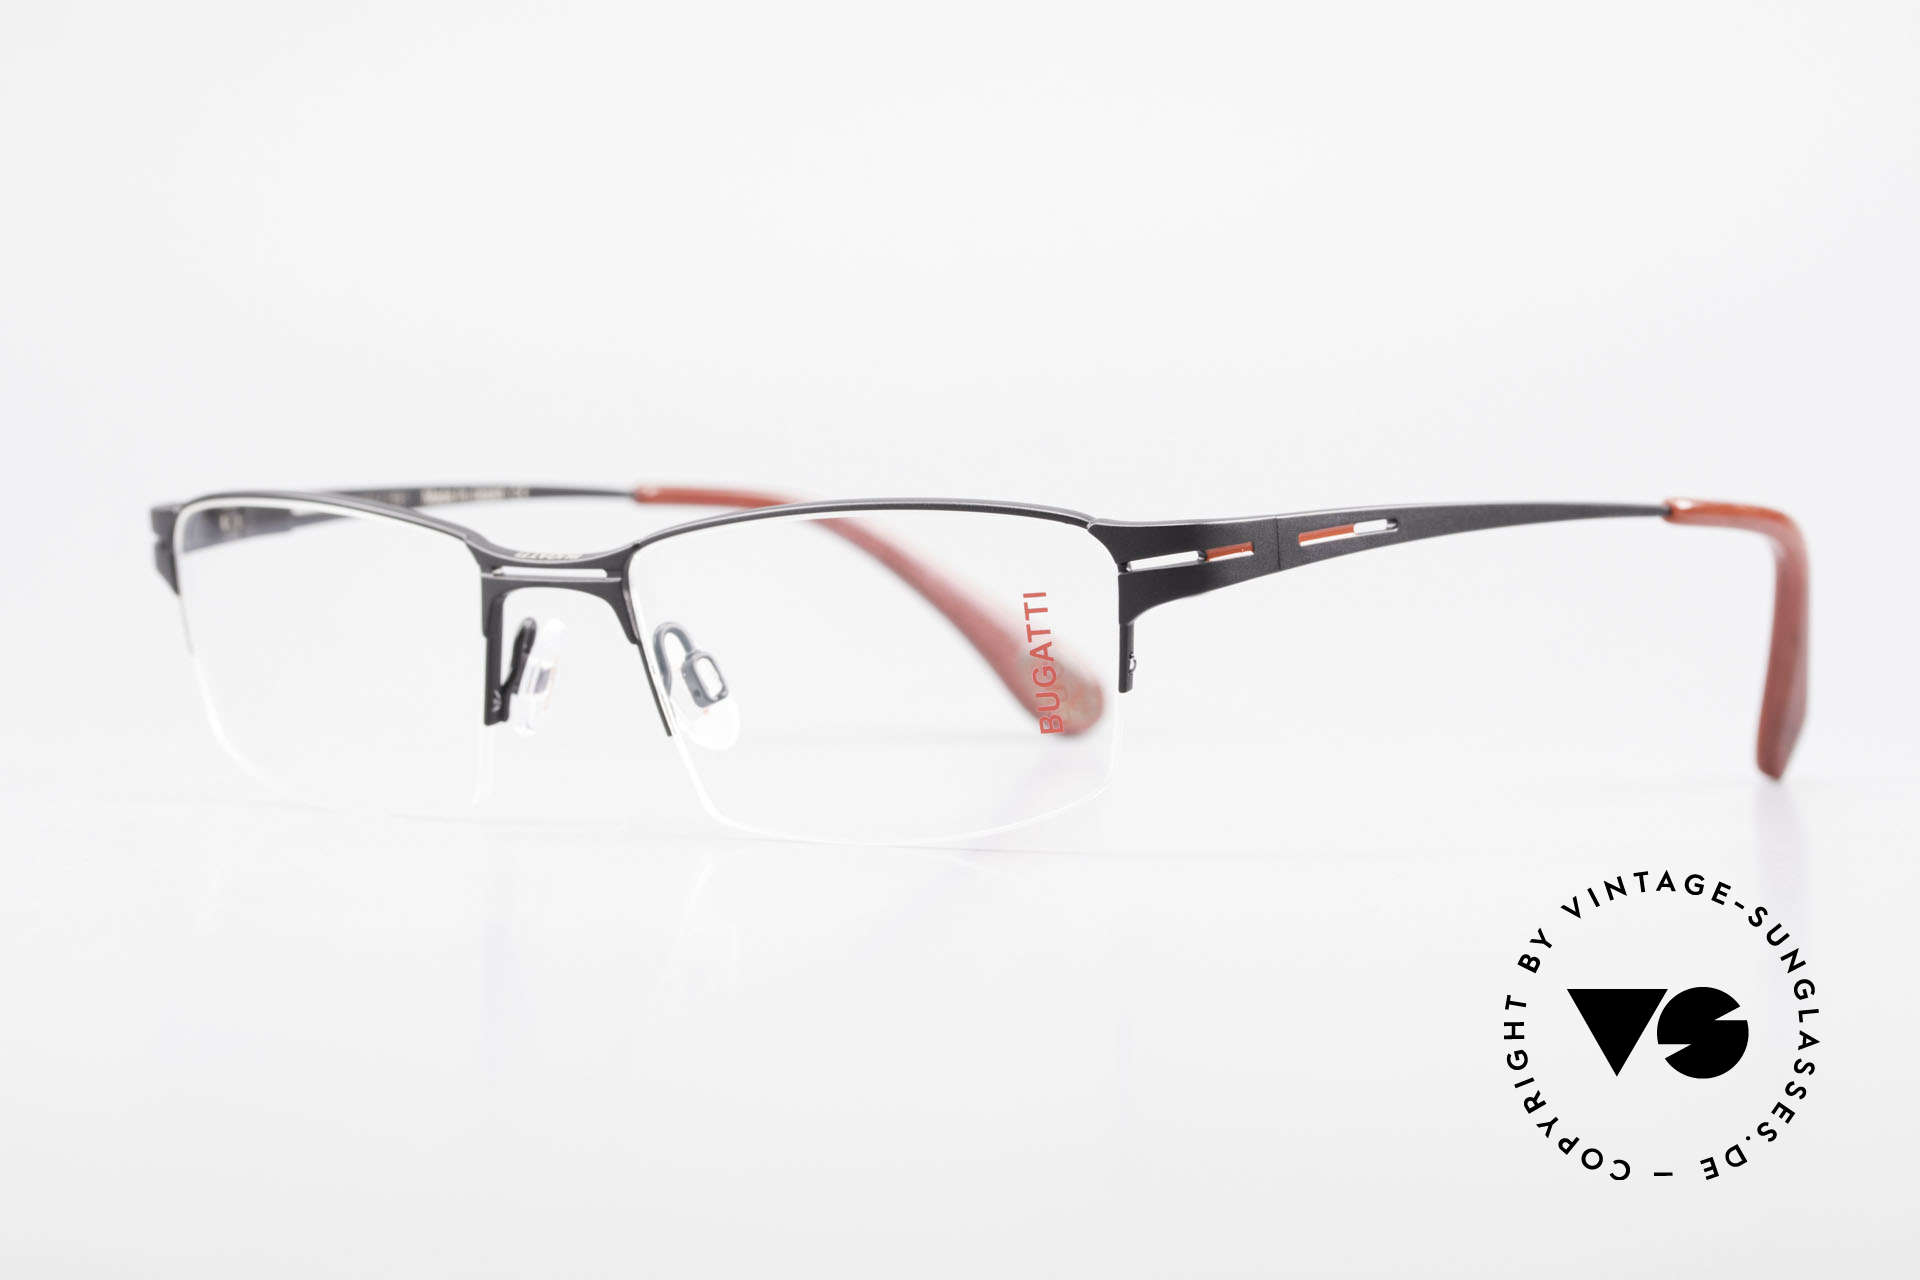 Bugatti 456 Titanium Eyeglass-Frame Nylor, semi rimless (Nylor thread) model weighs 19g only, Made for Men